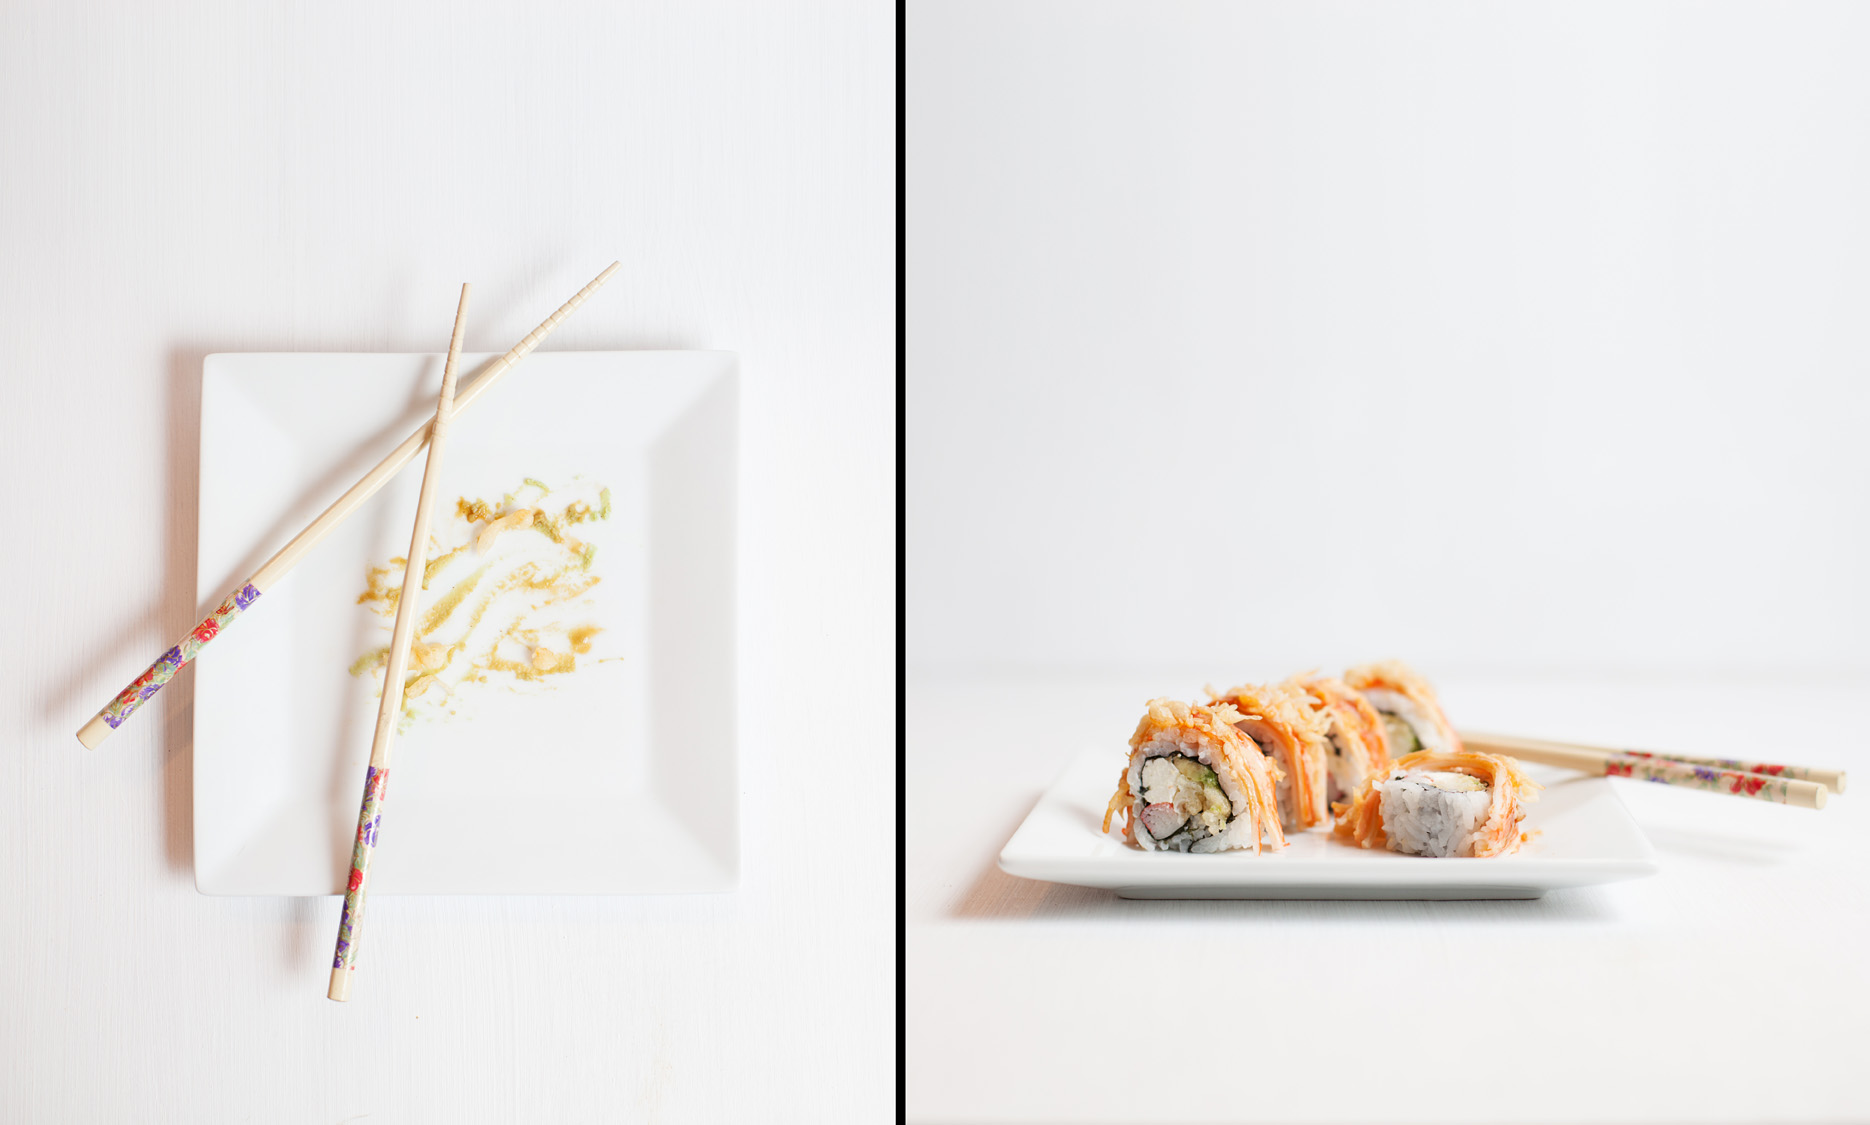 Winn Dixie Sushi Buddy Roll with chopsticks on white background next to finished plate.